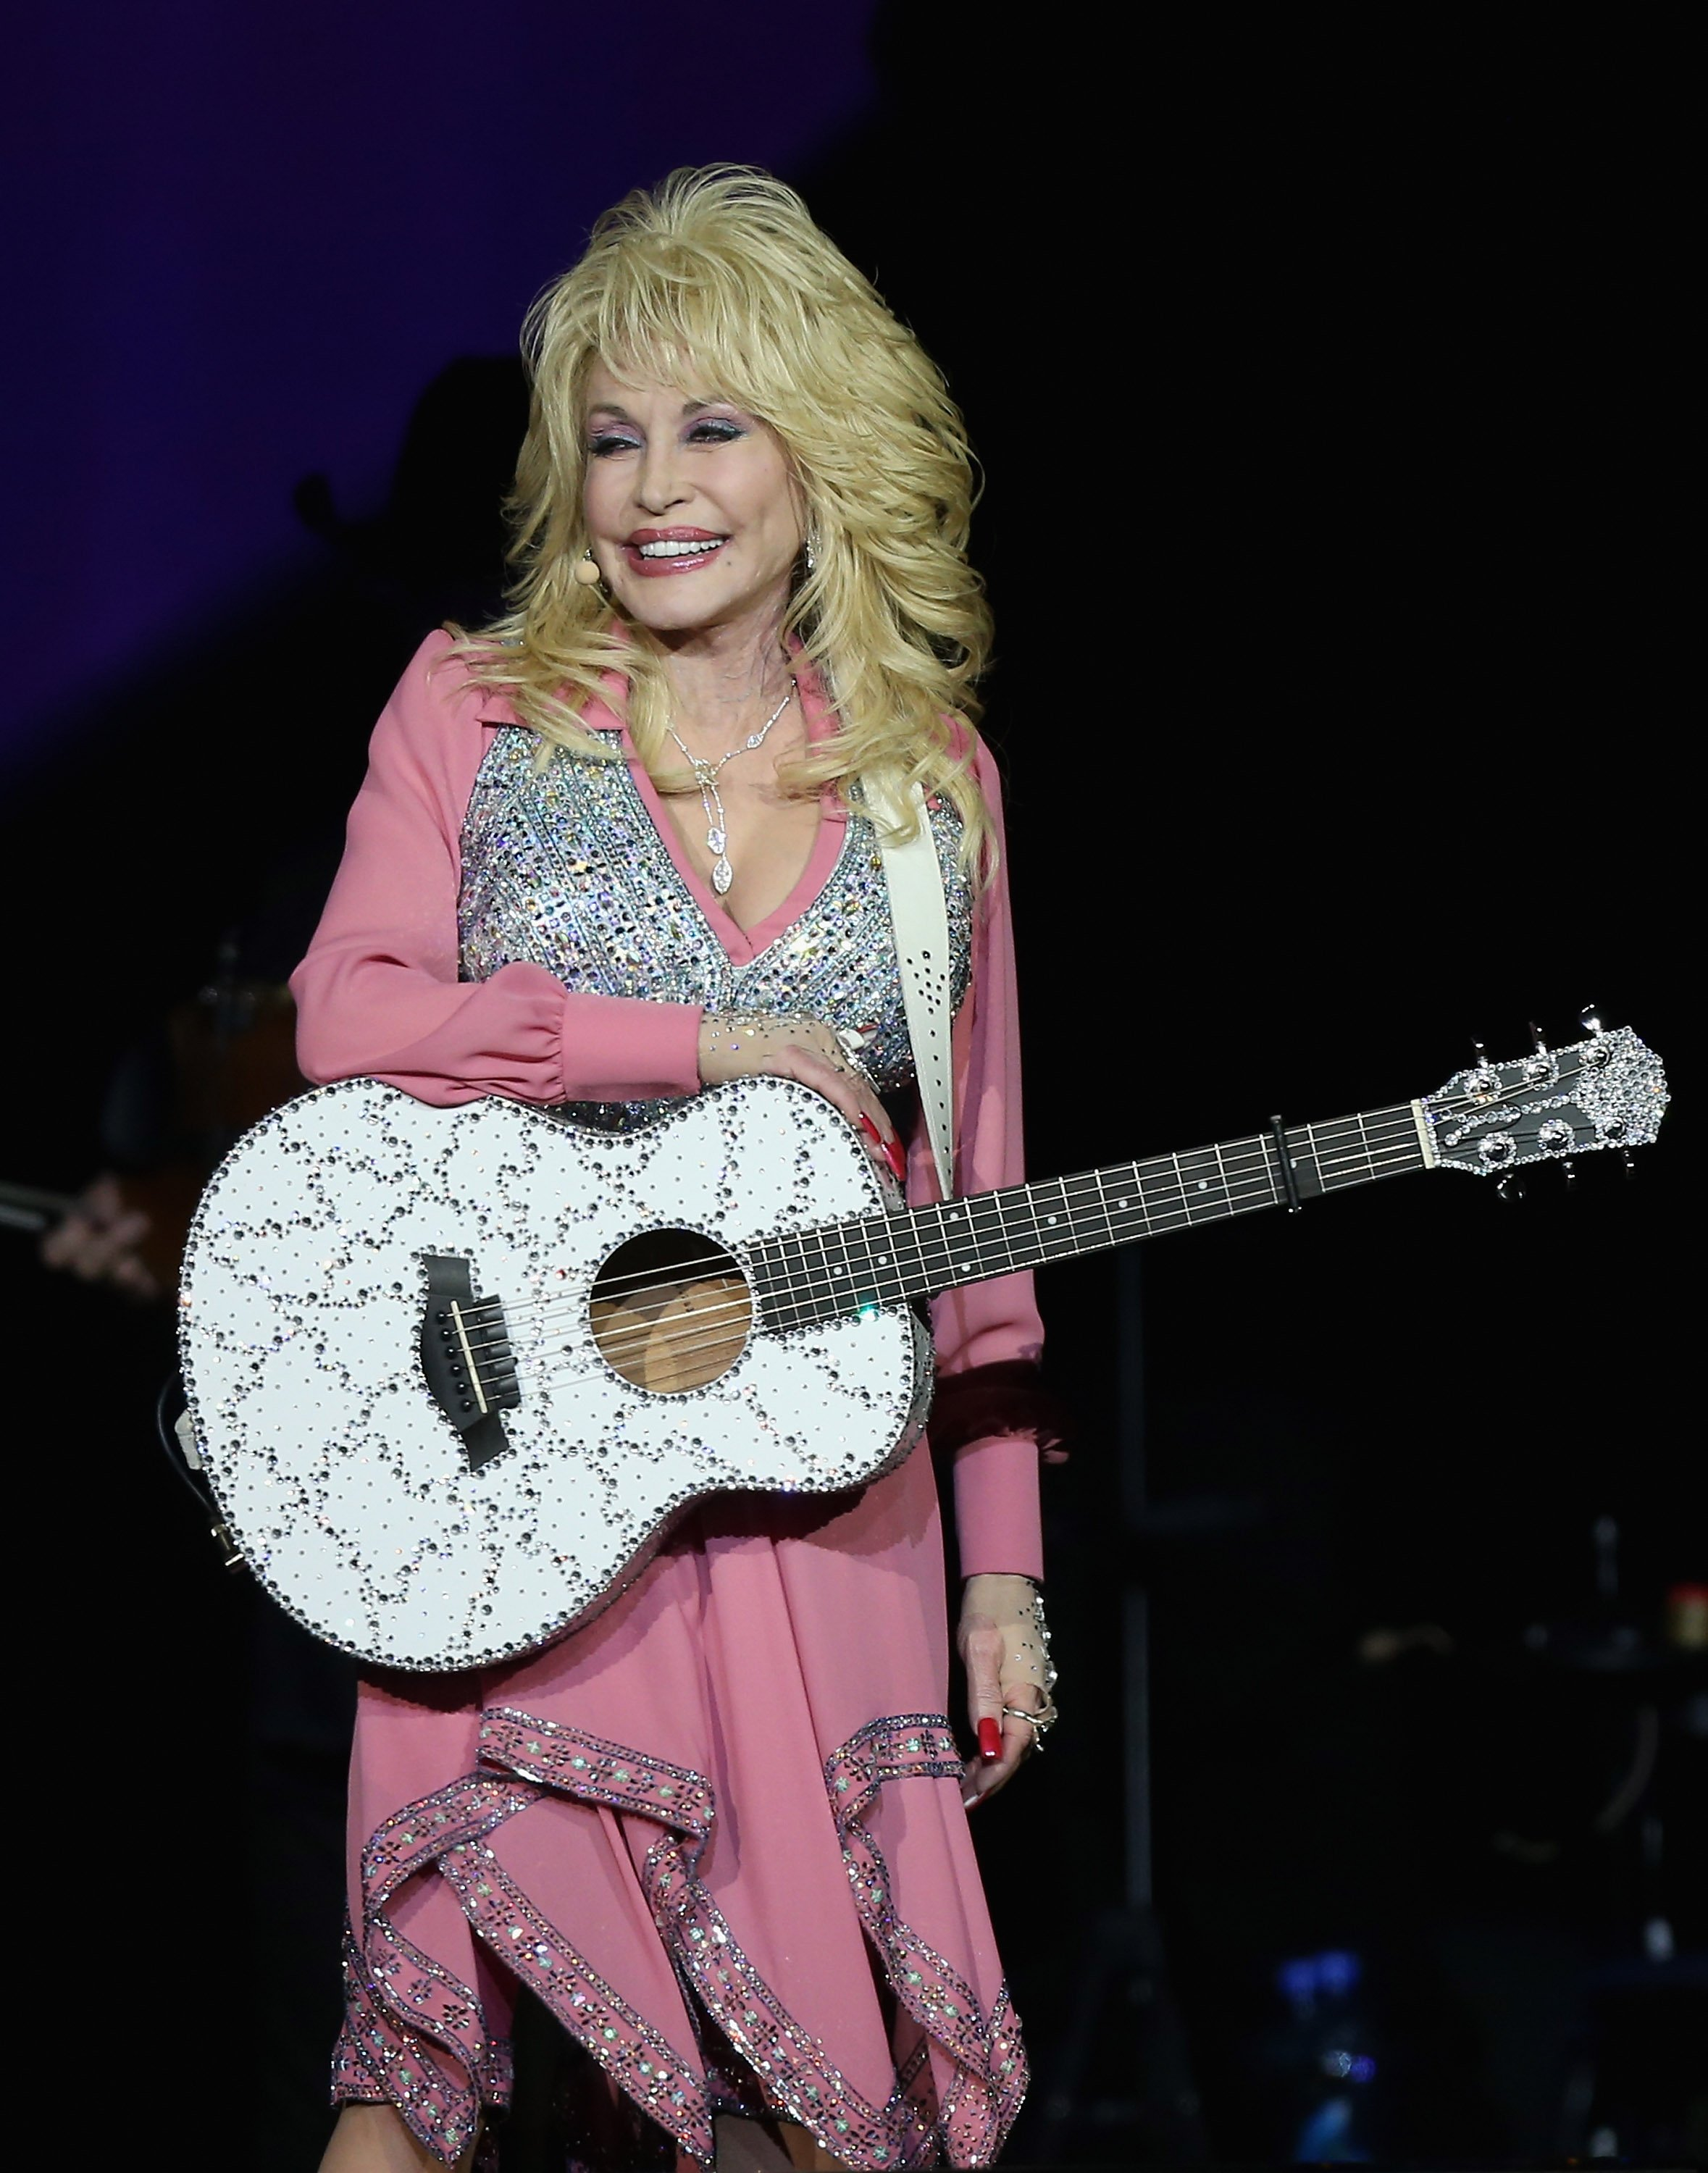 Dolly Parton performs live for fans at Vector Arena on February 7, 2014 | Image Source: Getty Images